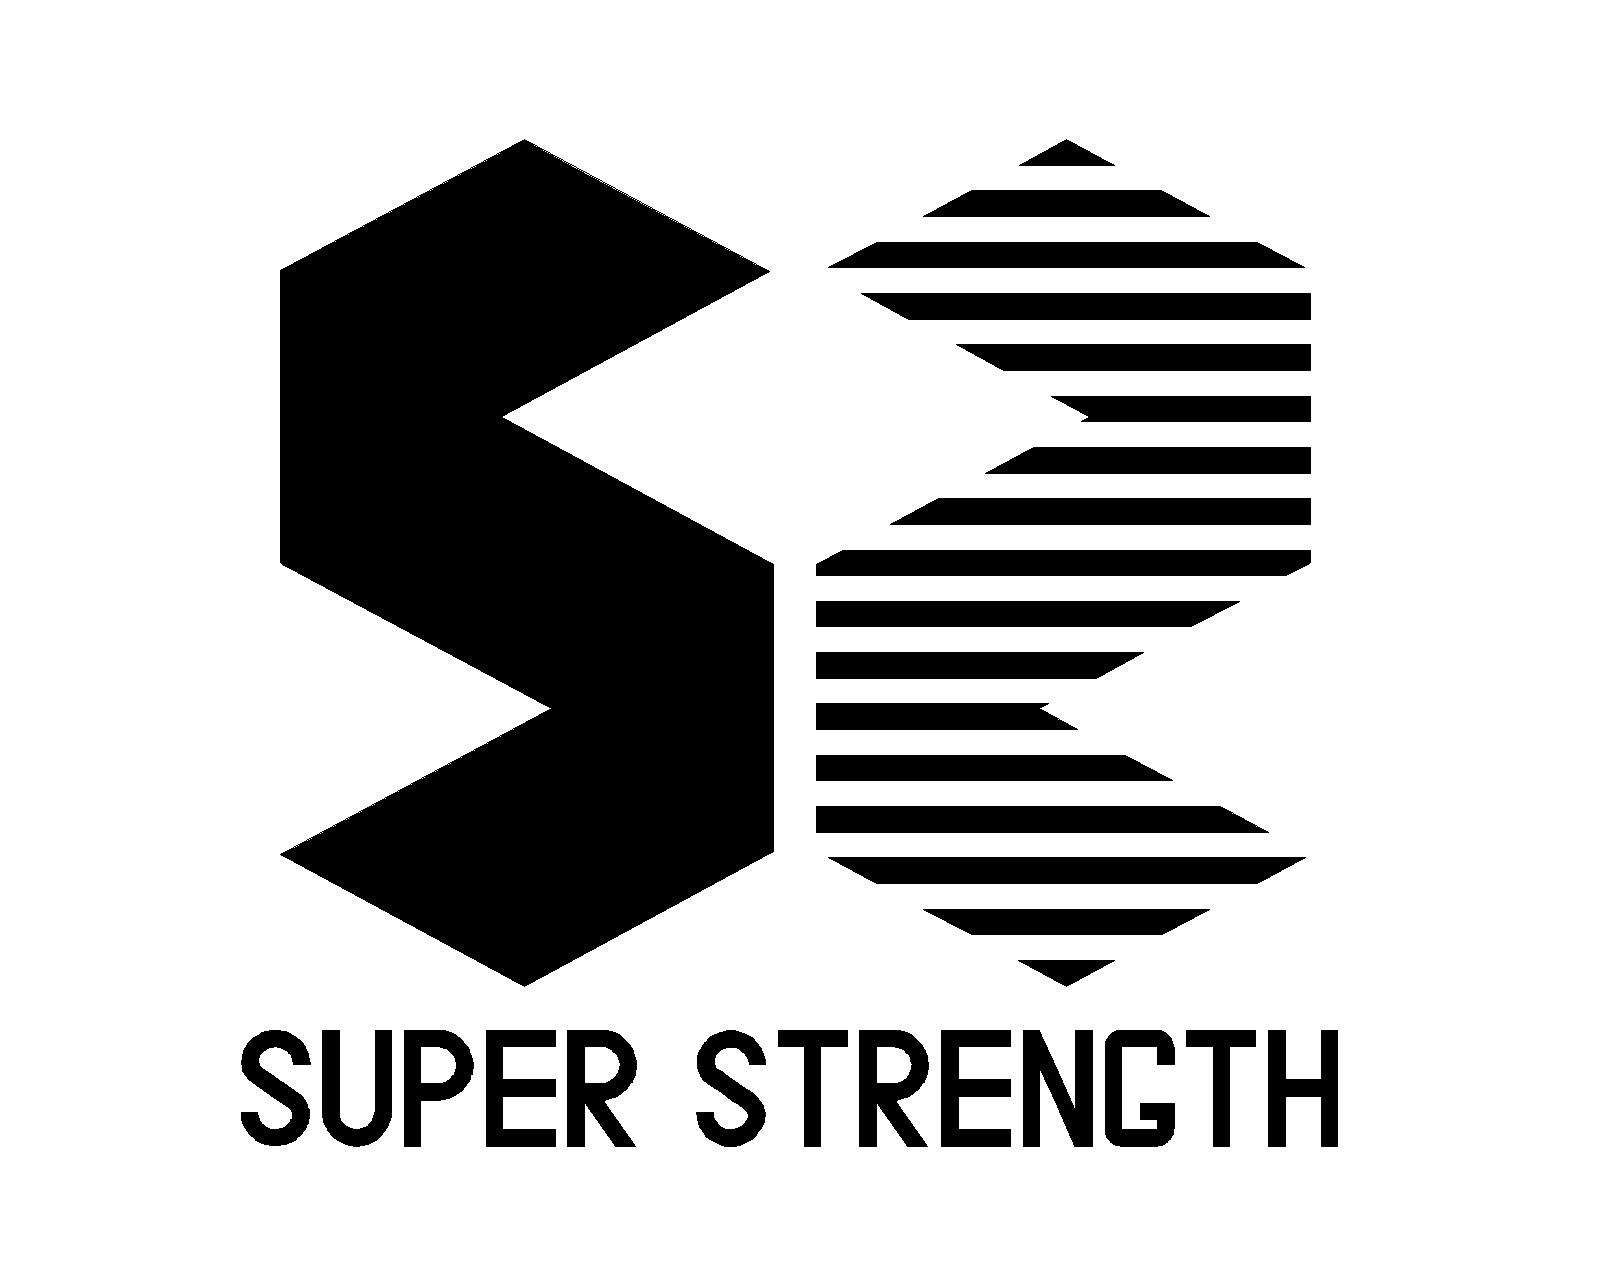 super-strength-logo